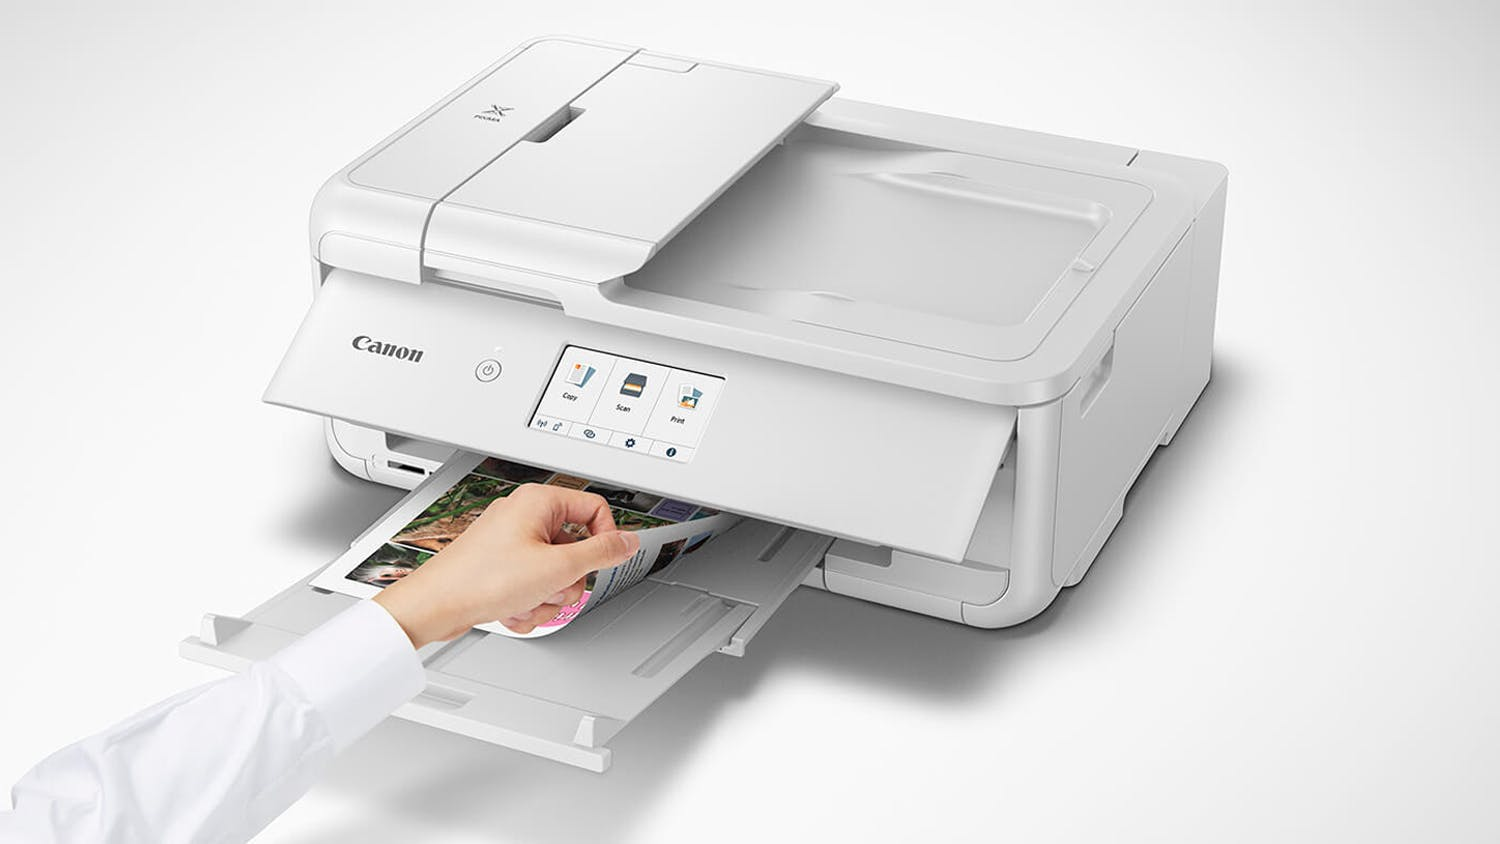 Canon Pixma TS9565 3-in-1 Value Bundle Printer